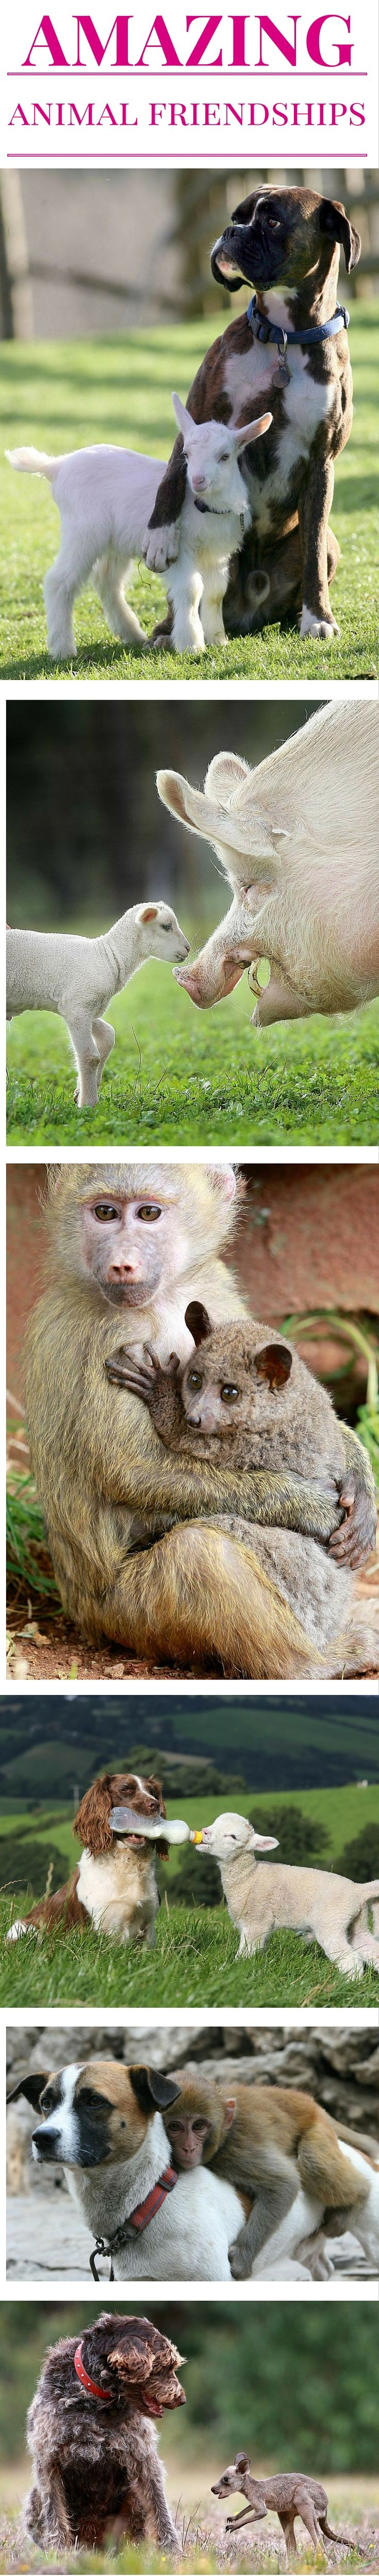 These orphaned animals found unlikely friends to adopt them.